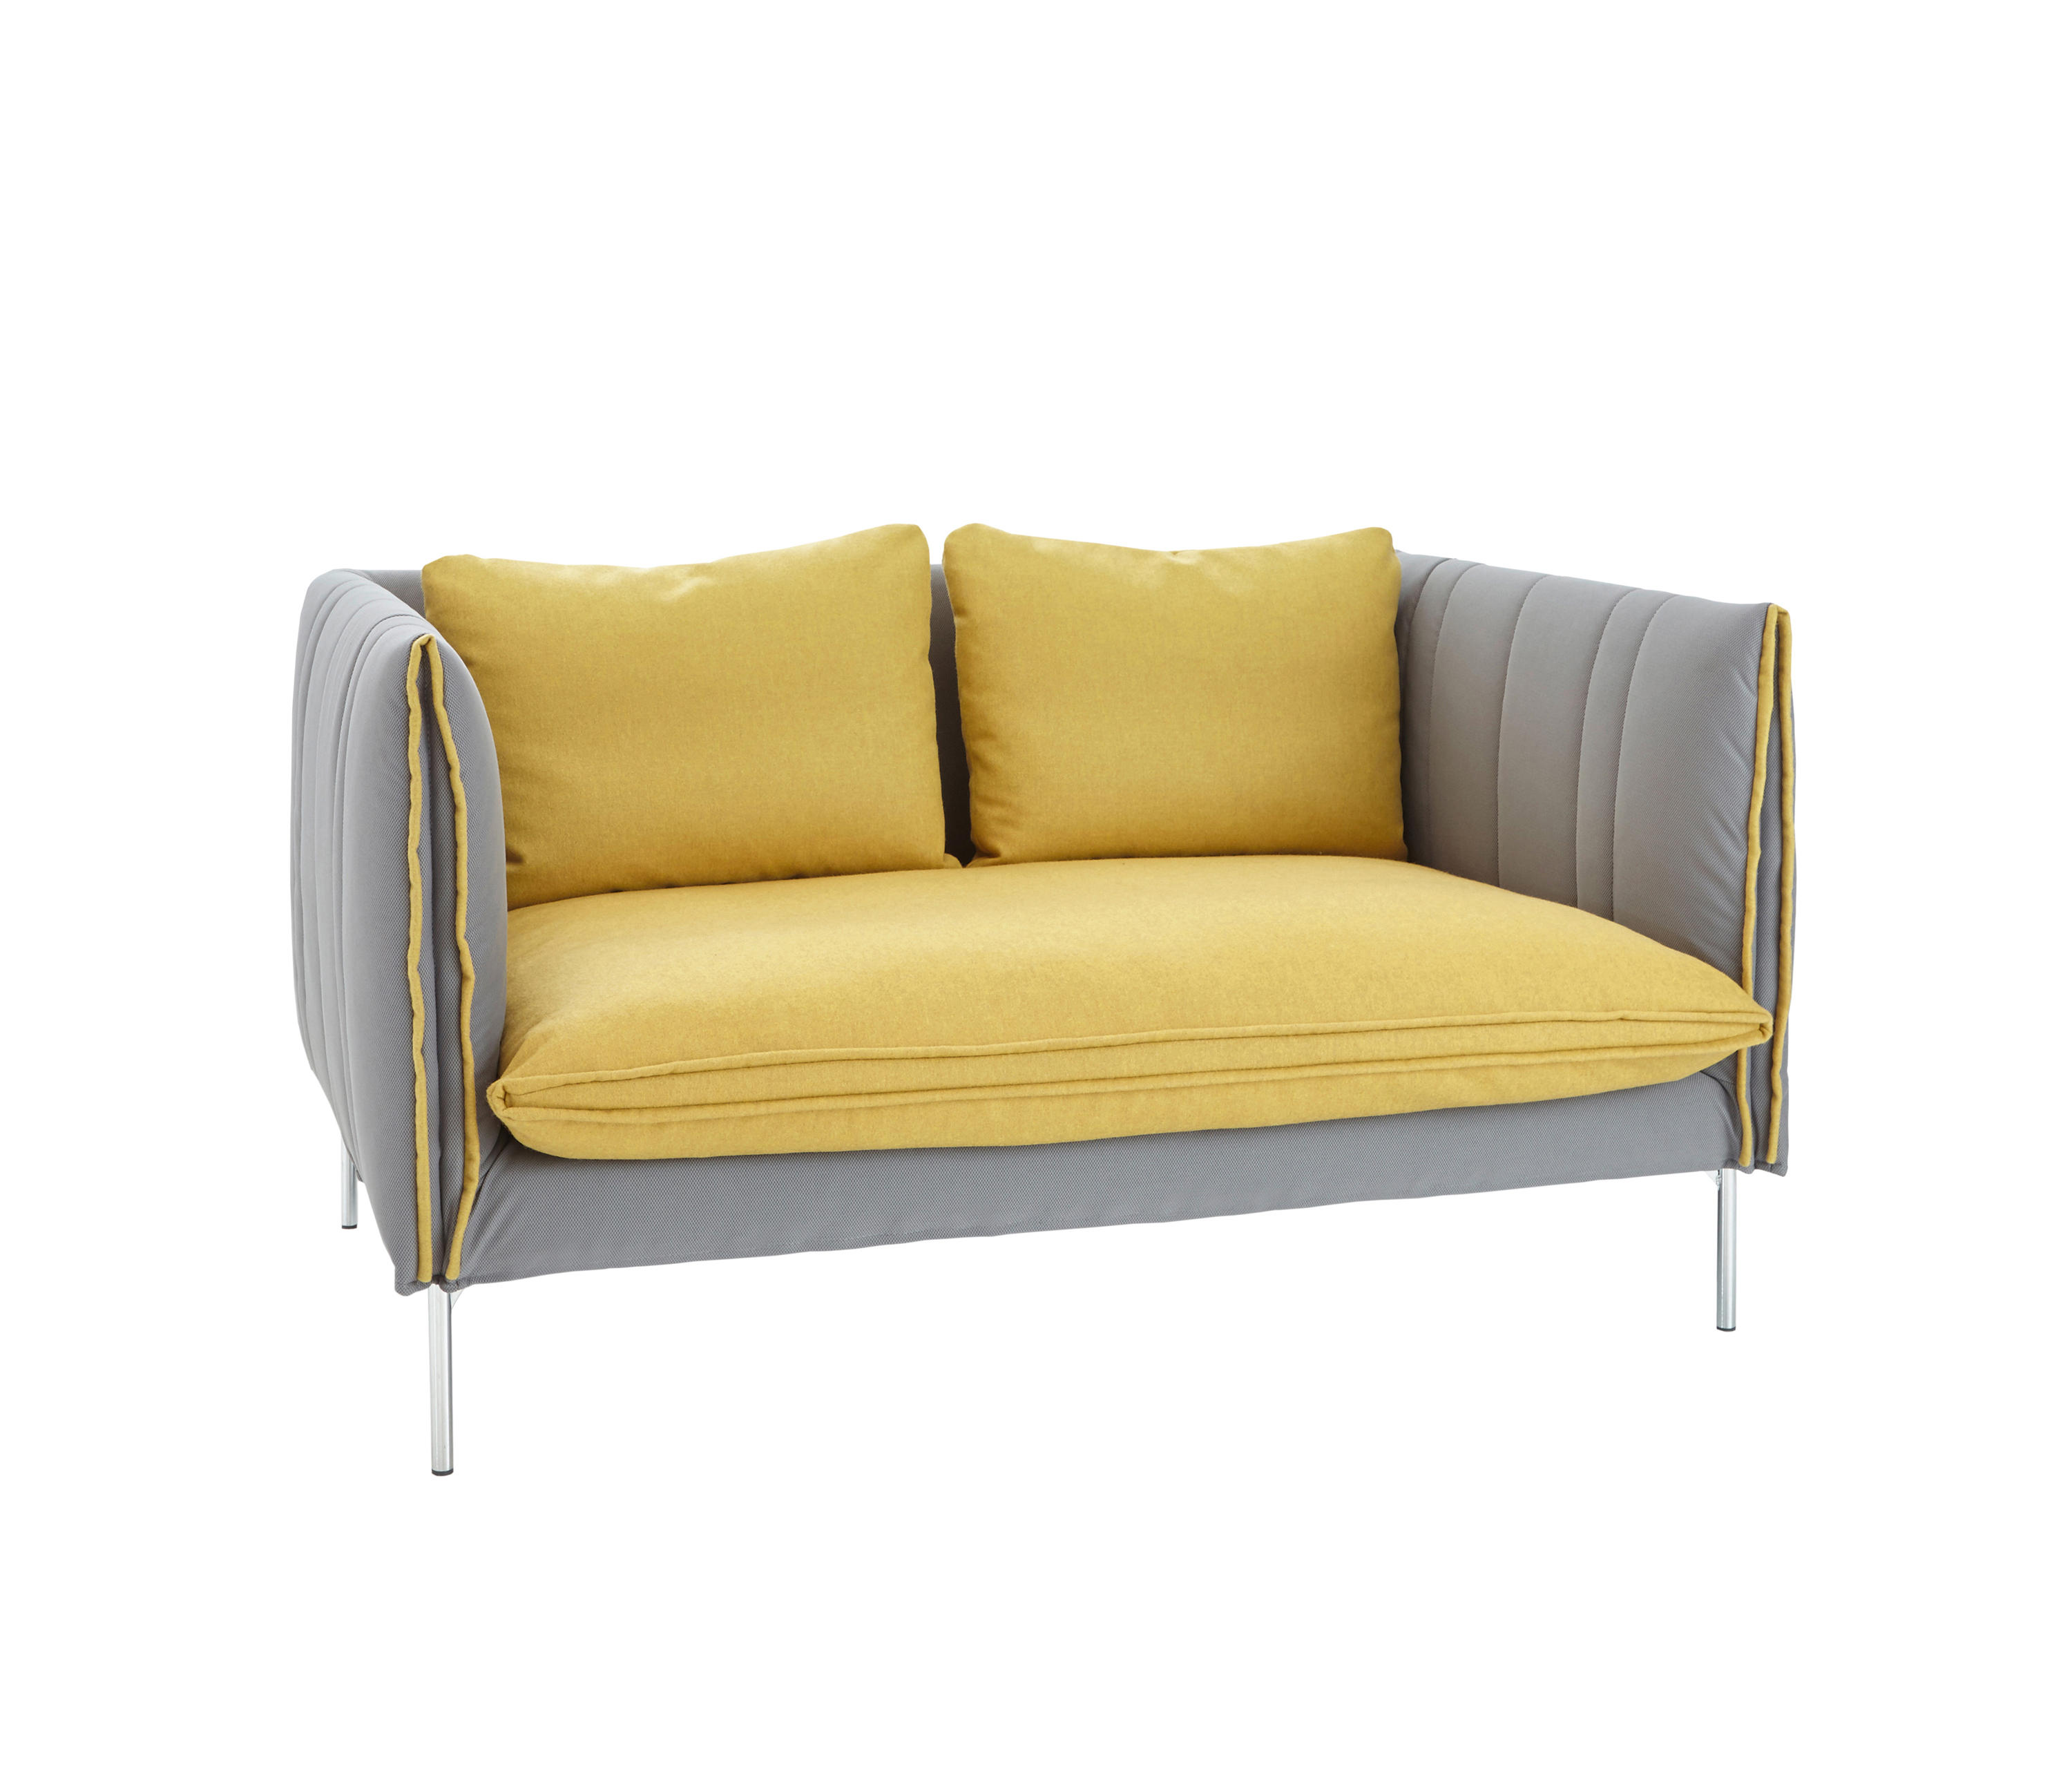 fourtytwo 2 seater low back sofas from smv sitz objektm bel architonic